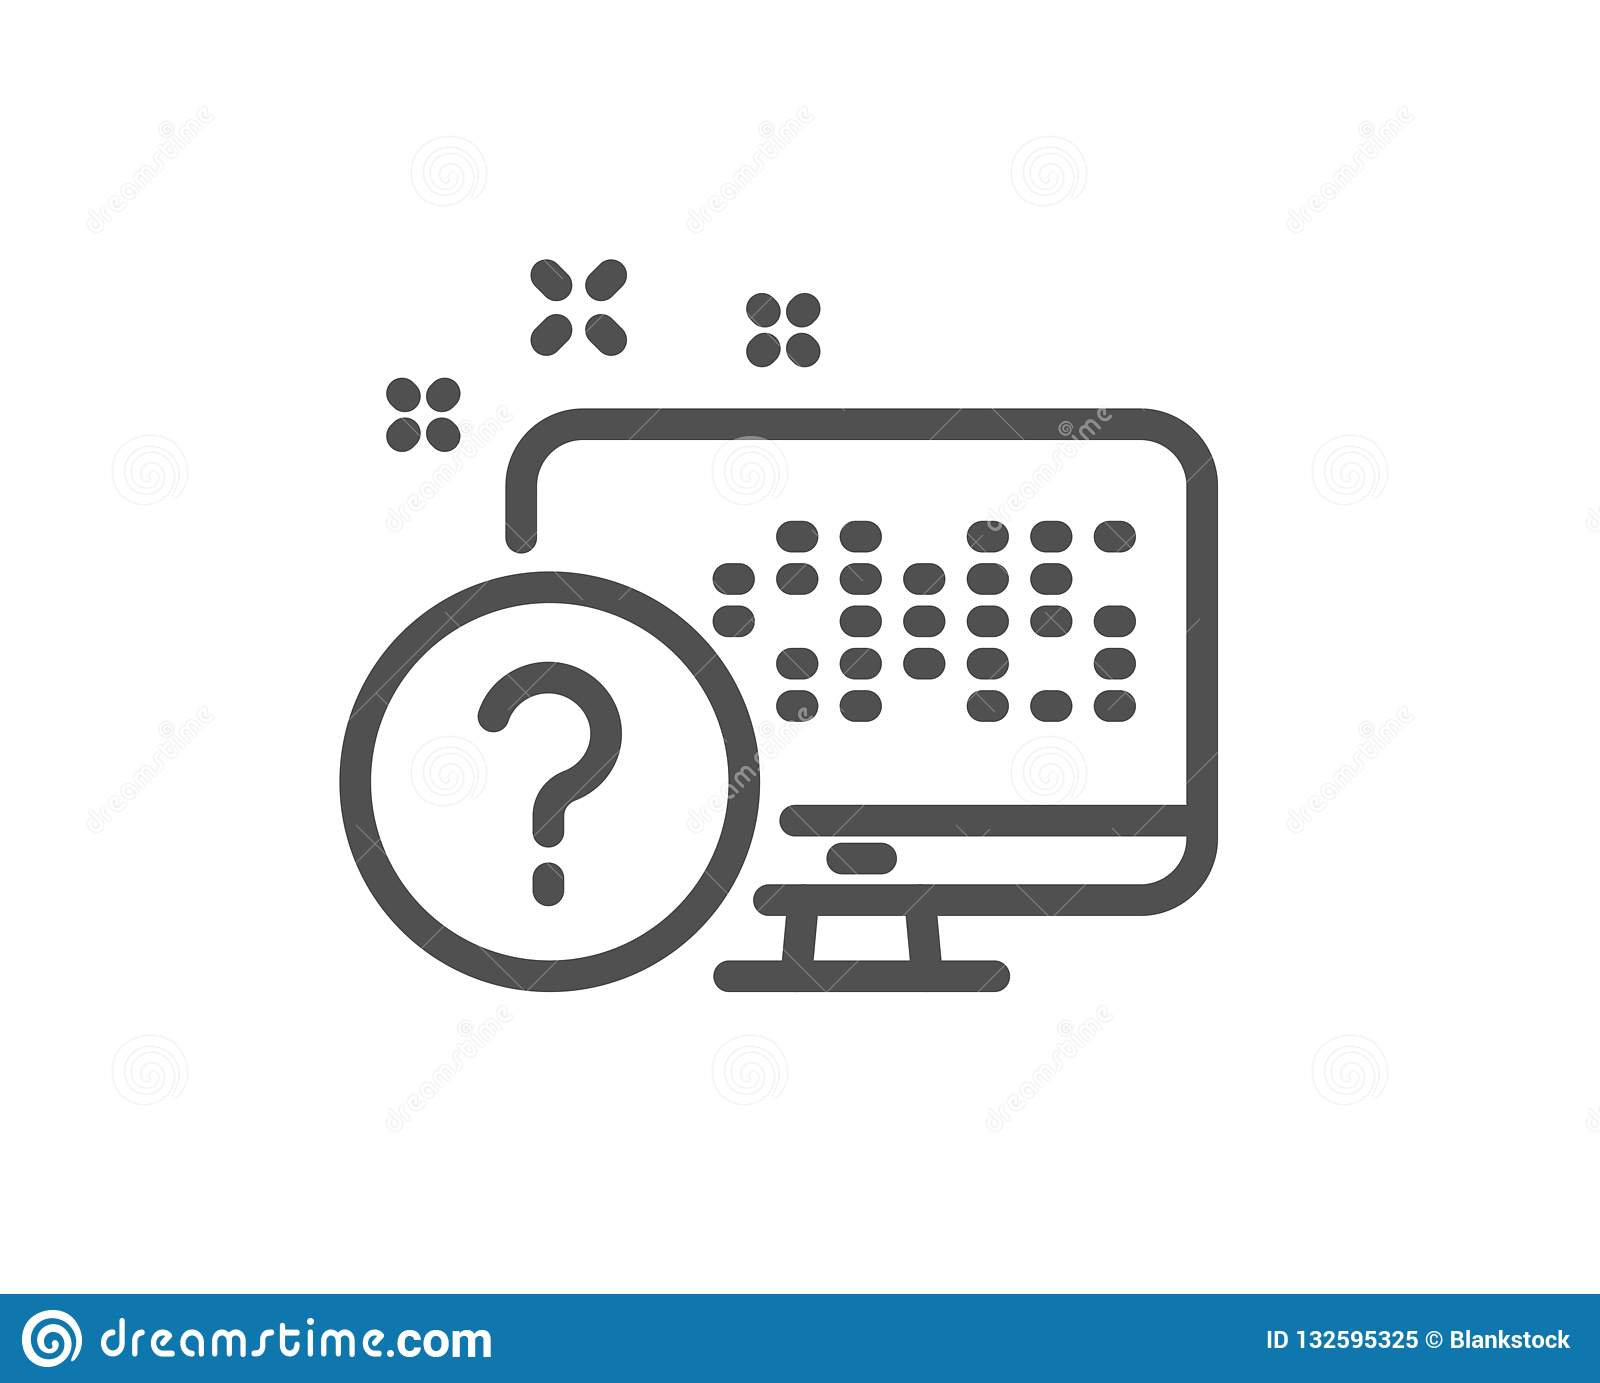 Question Mark Line Icon  Online Quiz Test Sign  Vector Stock